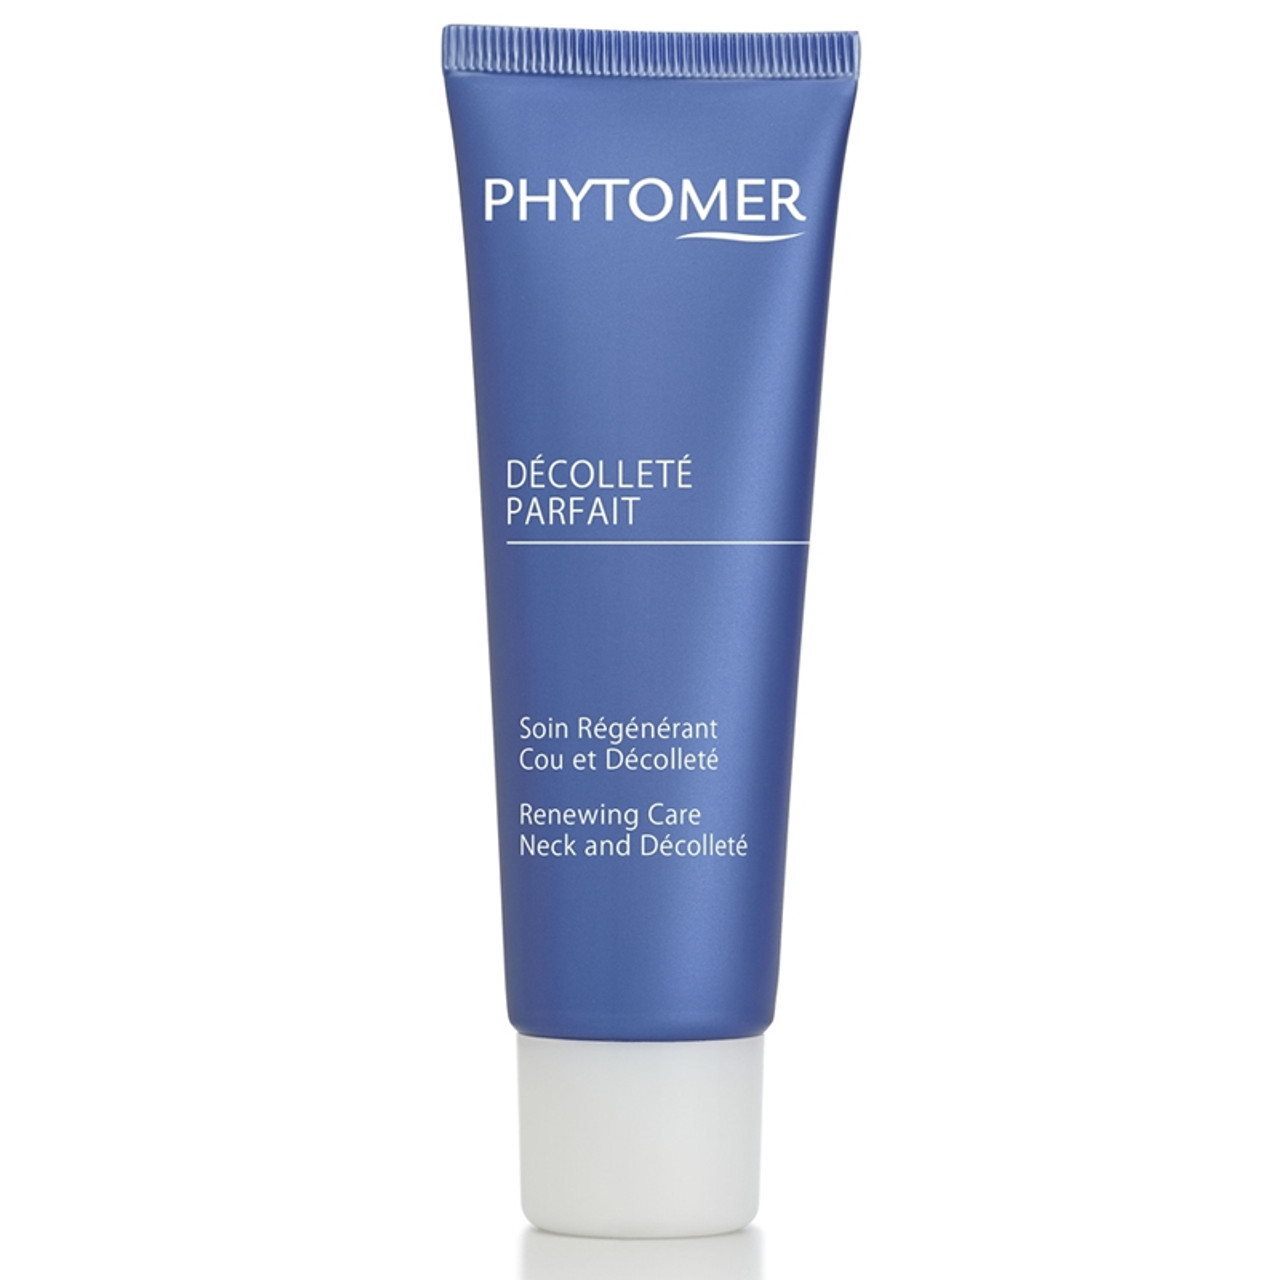 Phytomer Parfait Renewing Care Neck And Decollete